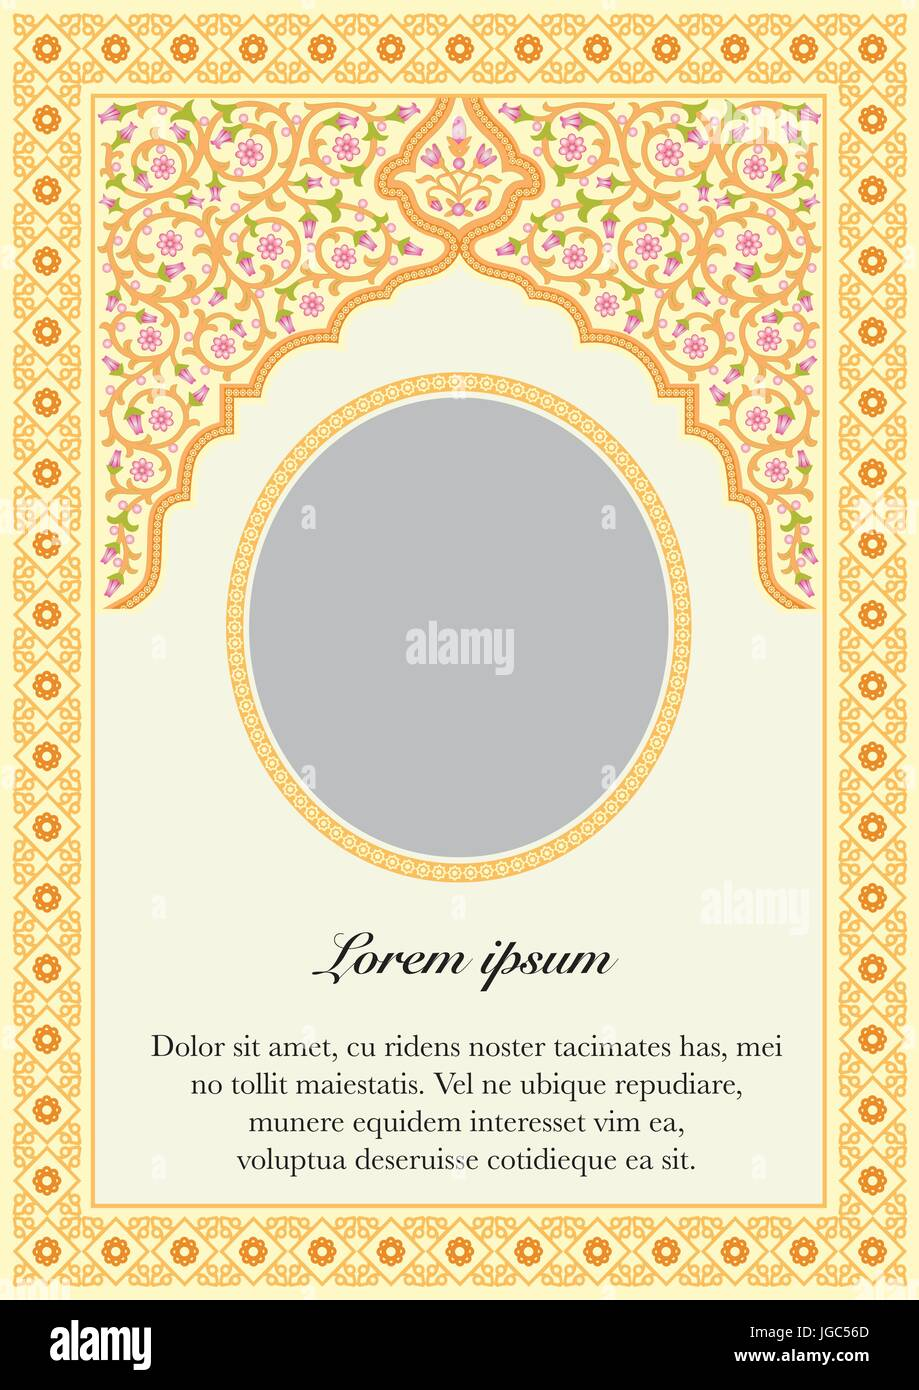 Background Cover Yasin : background, cover, yasin, Inside, Cover, Islamic, Style, Stock, Vector, Image, Alamy